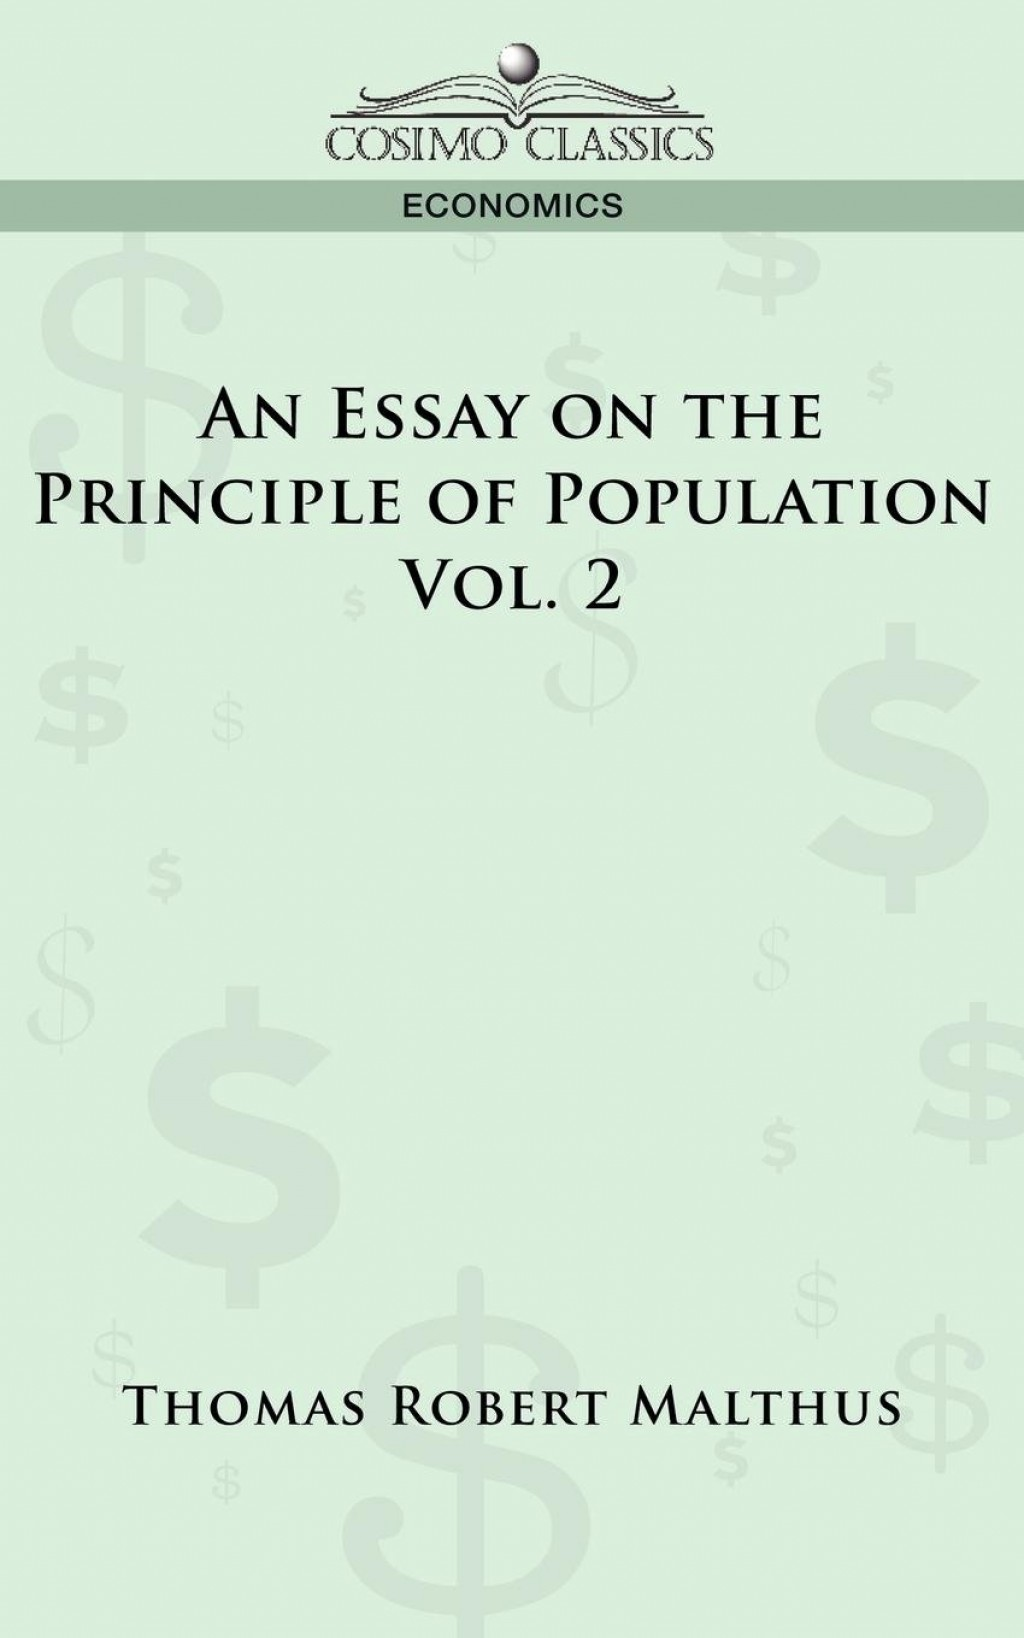 004 Essay Example An On The Principle Of Population Fascinating By Thomas Malthus Pdf In Concluded Which Following Large